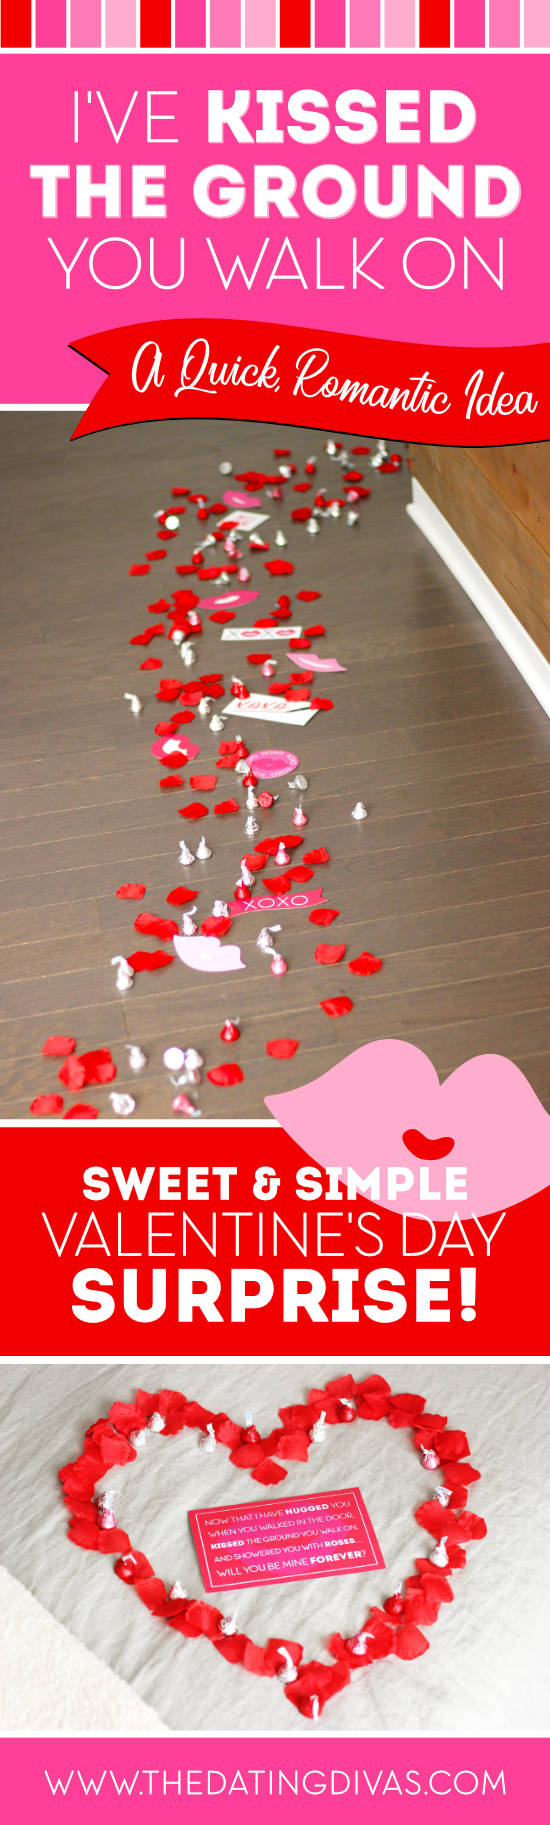 Kissed the Ground You Walk On Valentine's Day Surprise #romanticvalentines #vdayidea